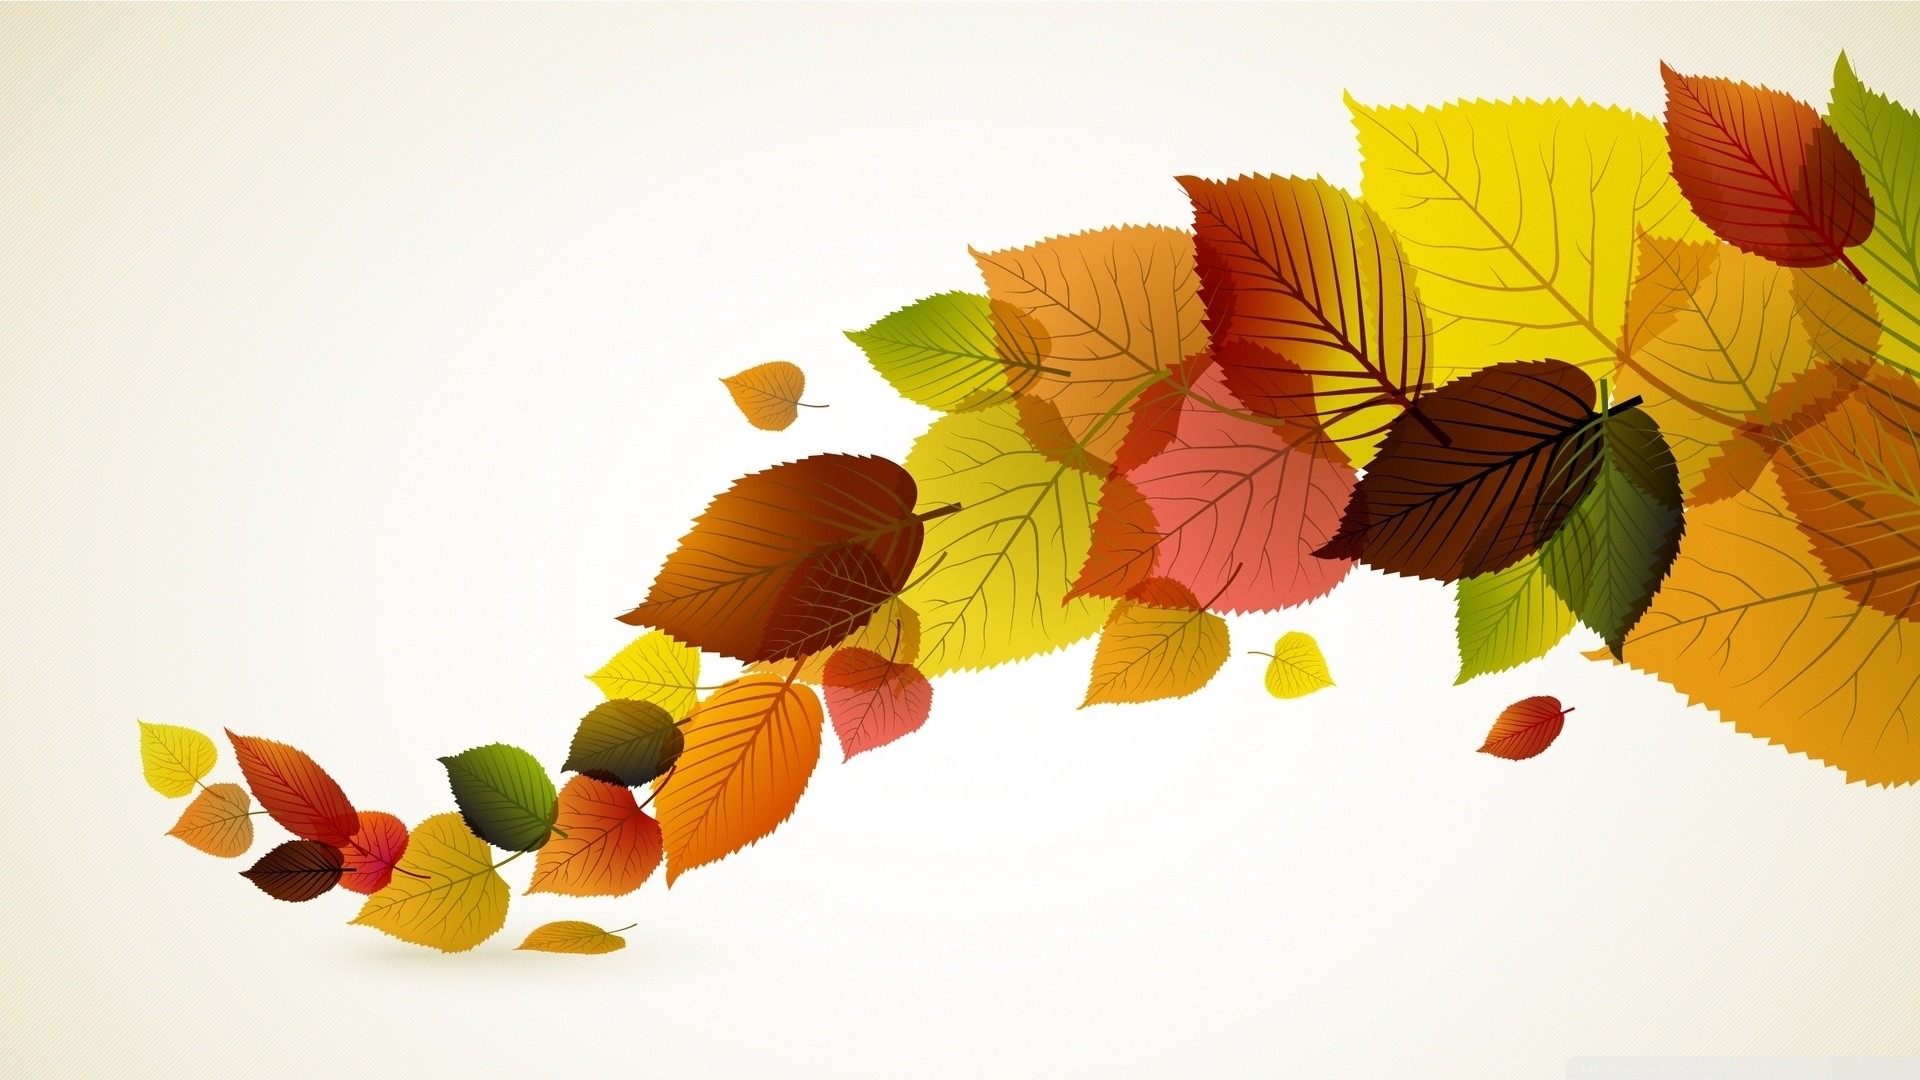 Fall Backgrounds Autumn Leaves